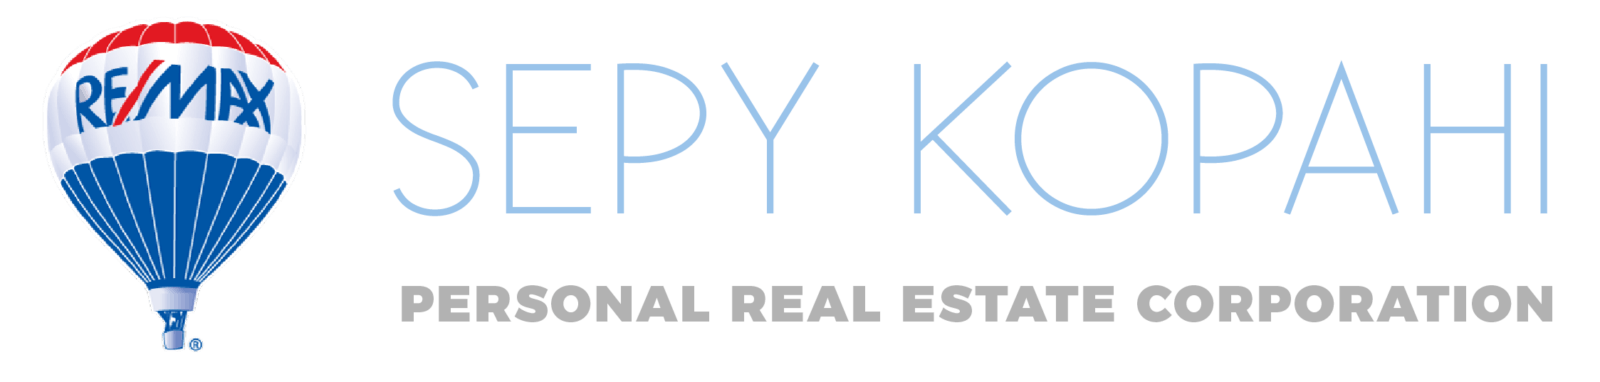 Sepy Kopahi Personal Real Estate Corporation